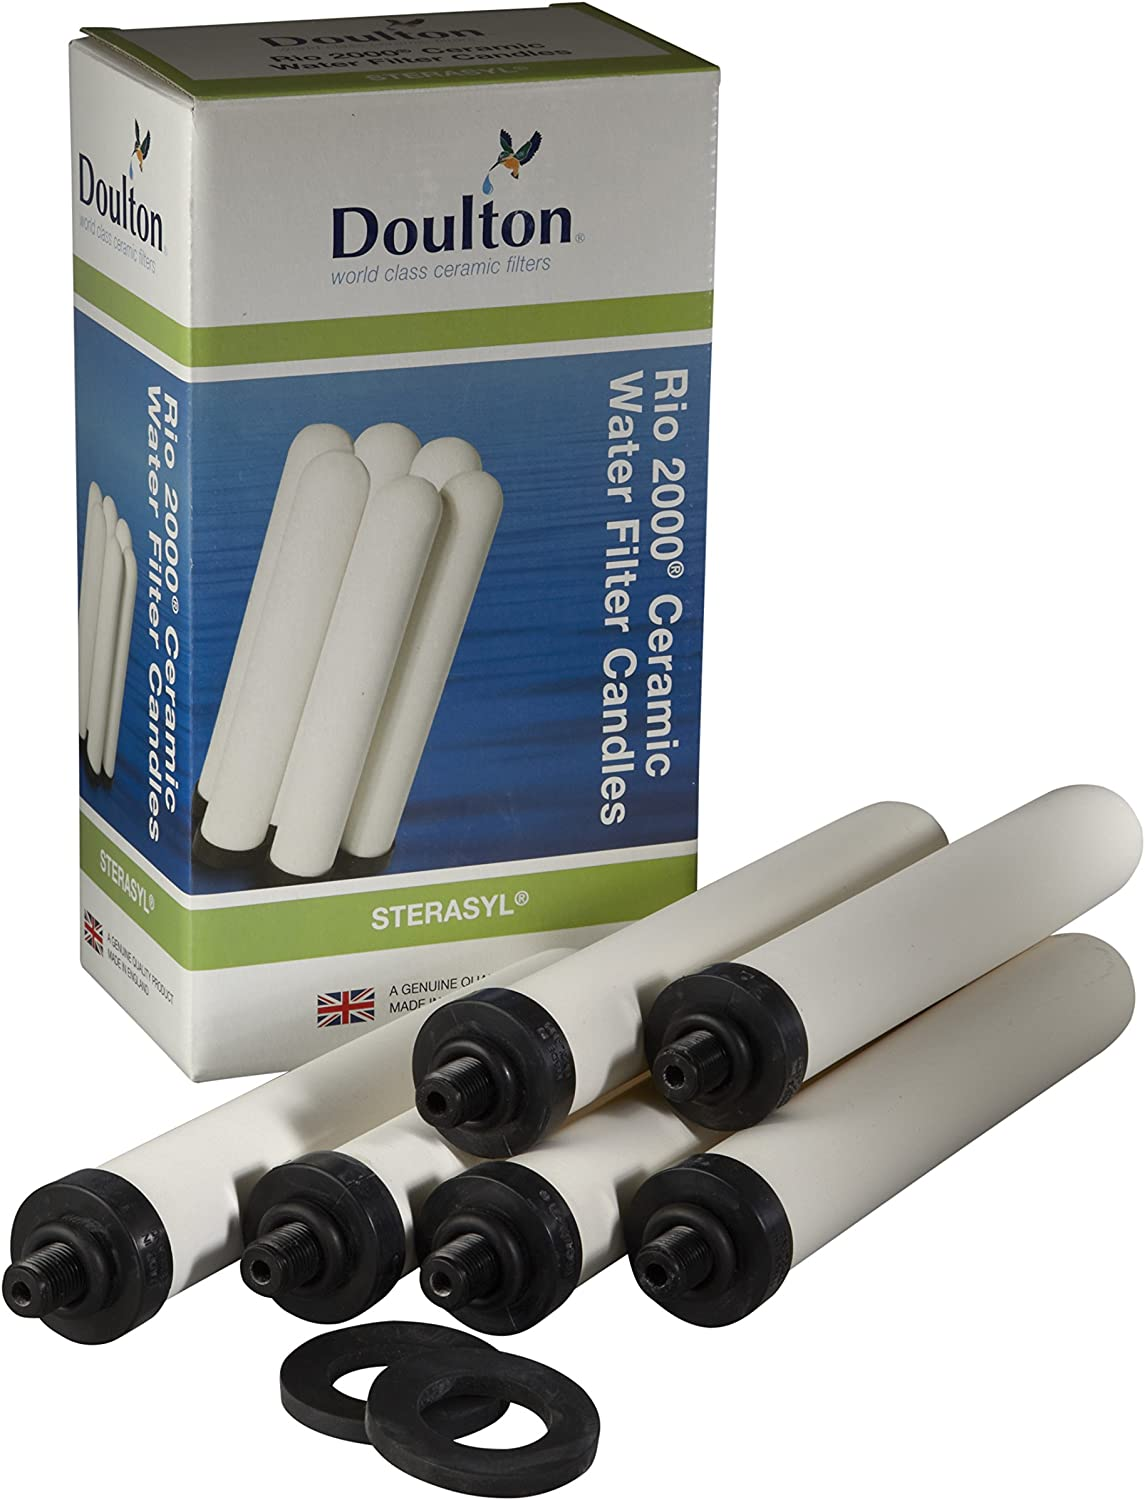 Doulton W9120145 6 x Bespoke Sterasyl Ceramic Drinking Water Candle Filters 8 inch for High Flow Big bluee Housing, White